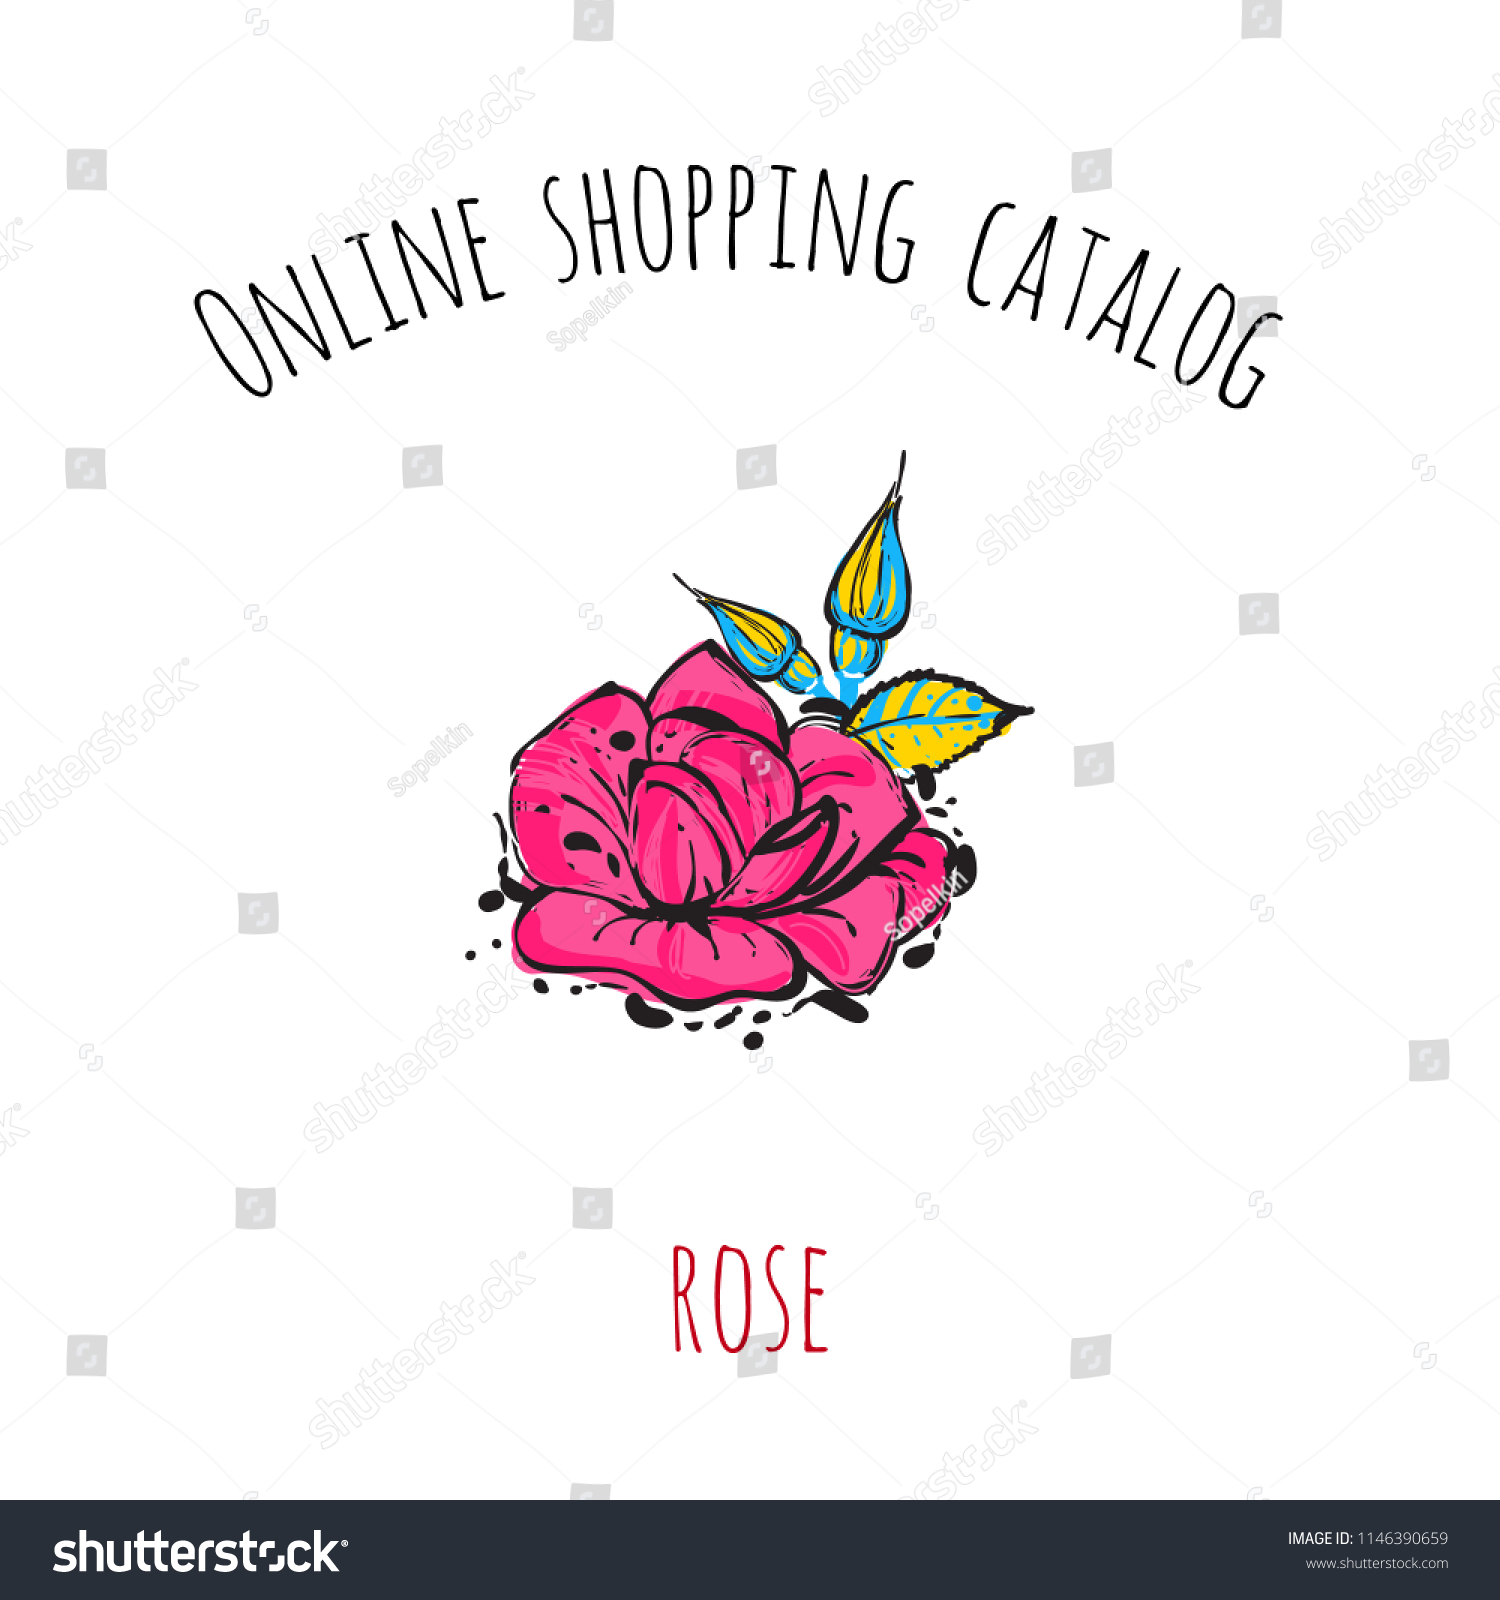 5fb3e21962e6 Online shopping catalog  rose. Patch illustration with fashion element